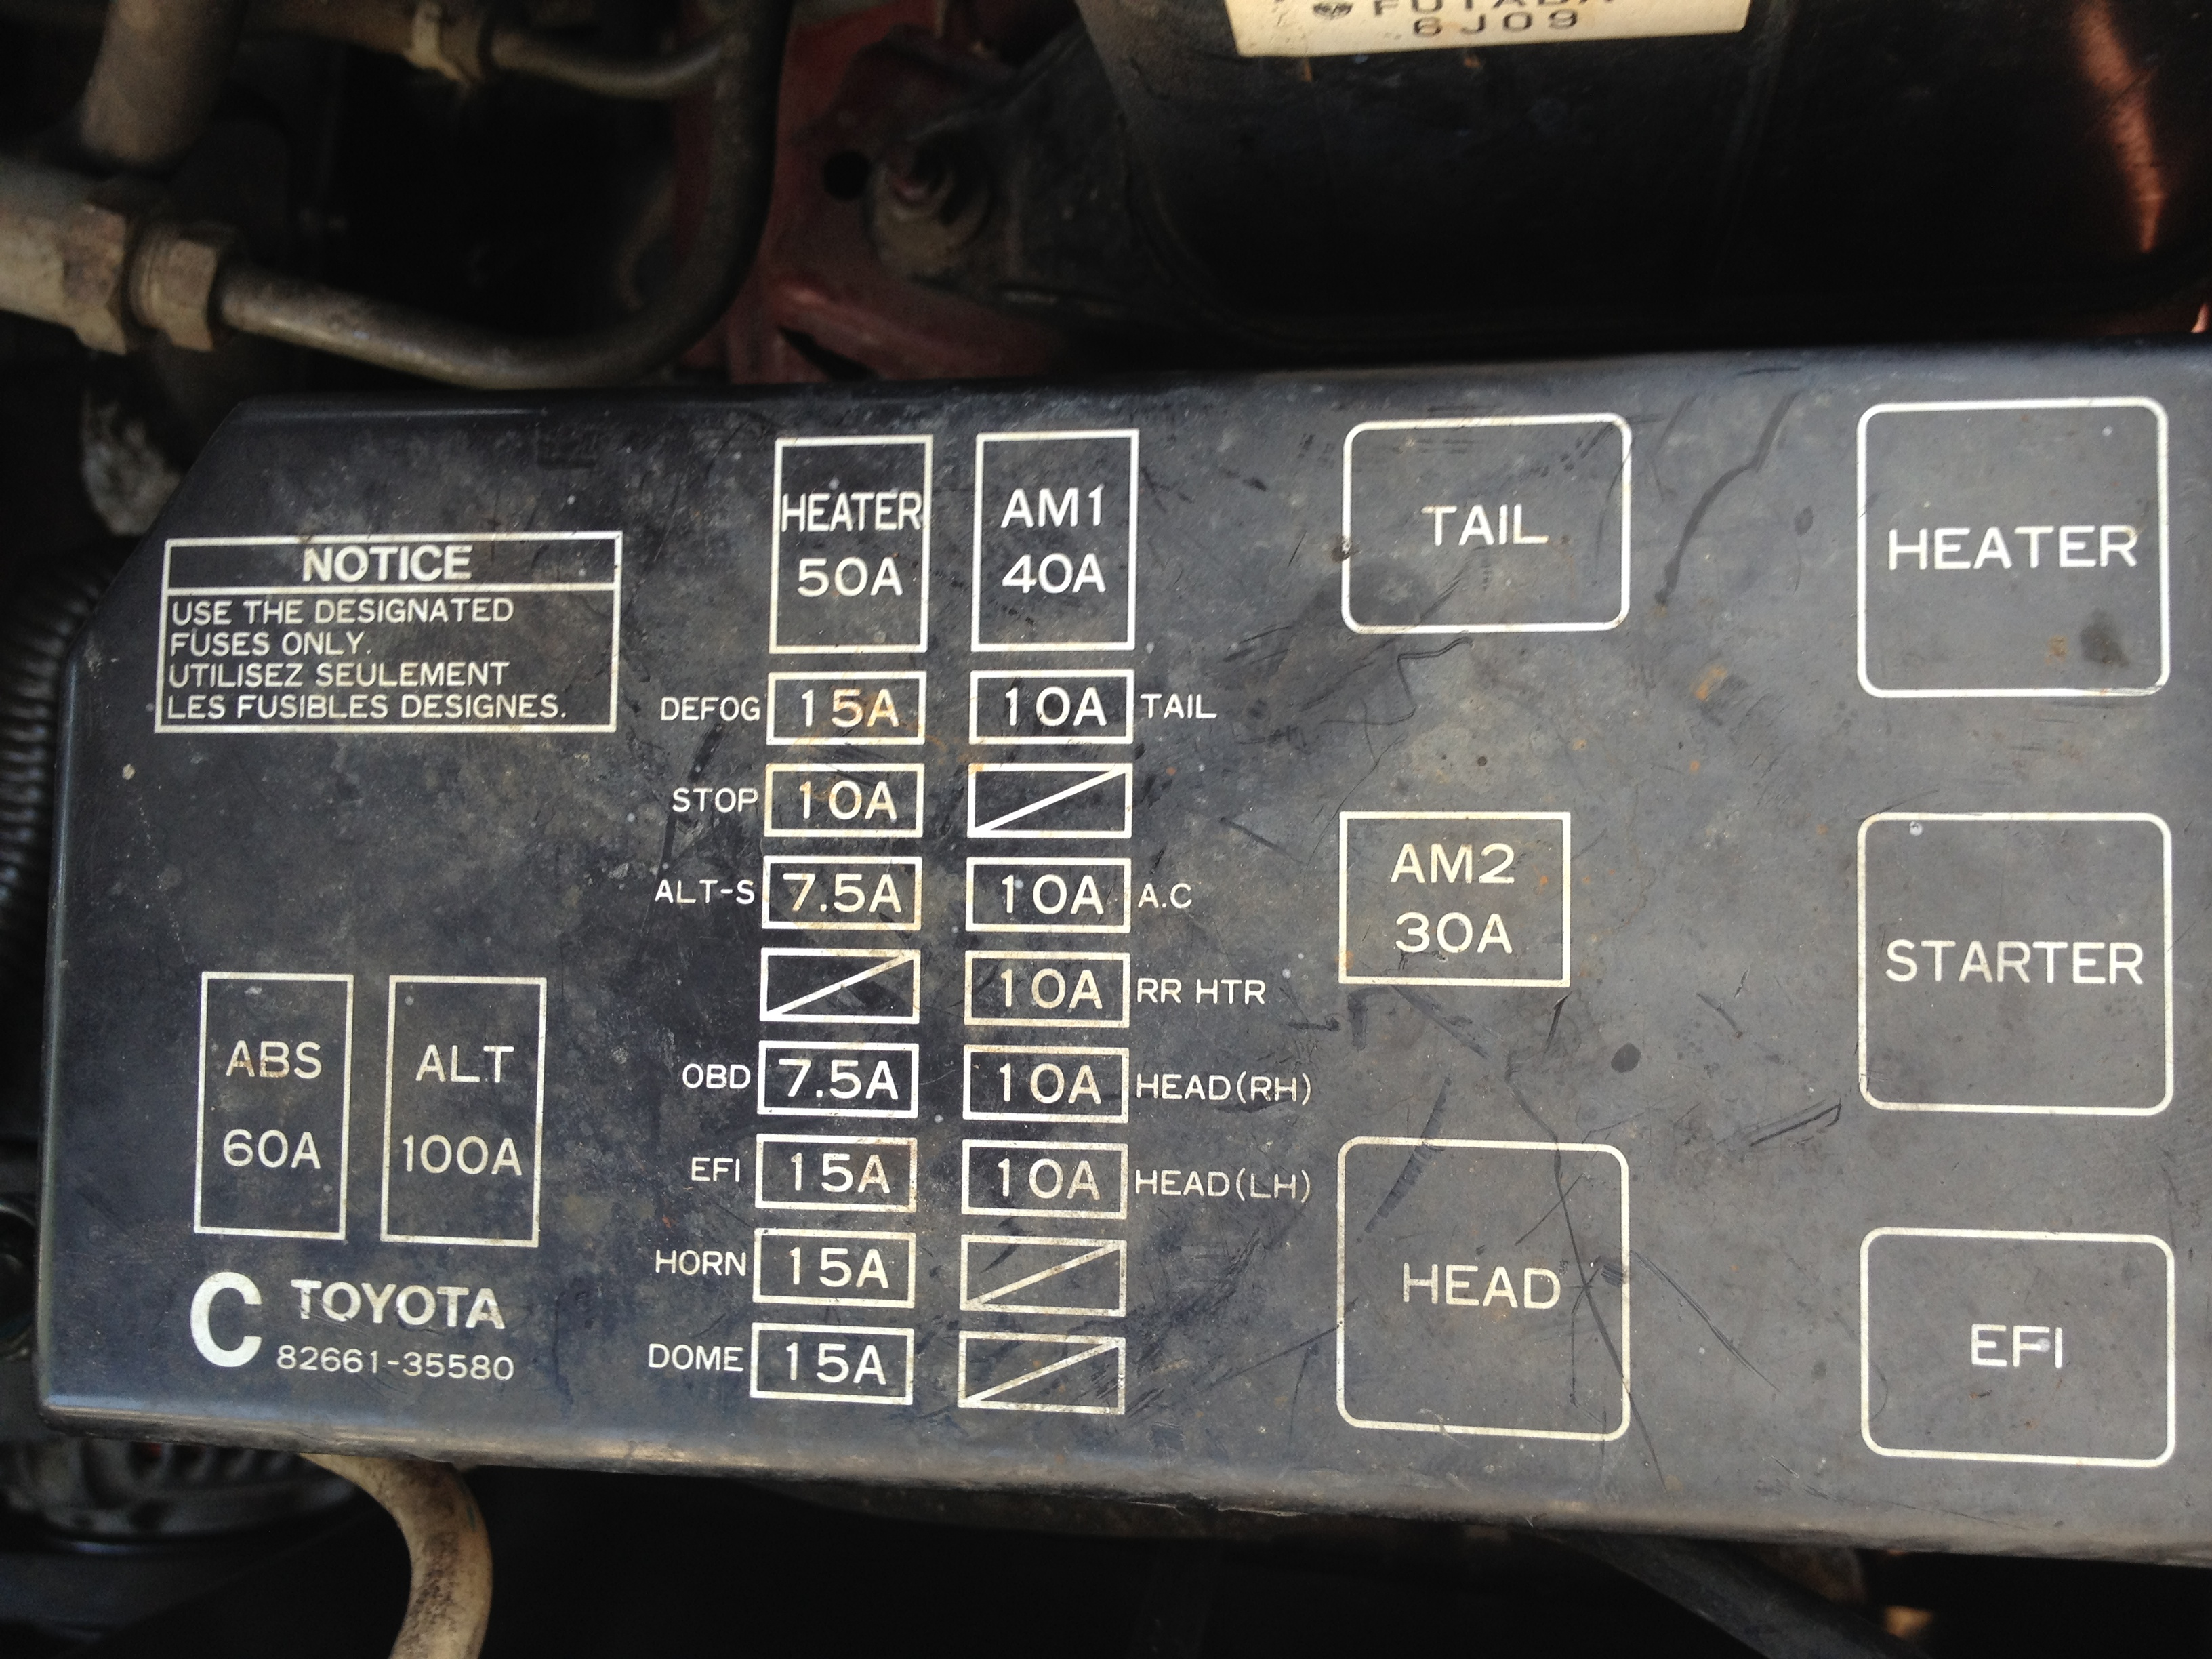 1995 Toyotum Tacoma Fuse Box Diagram